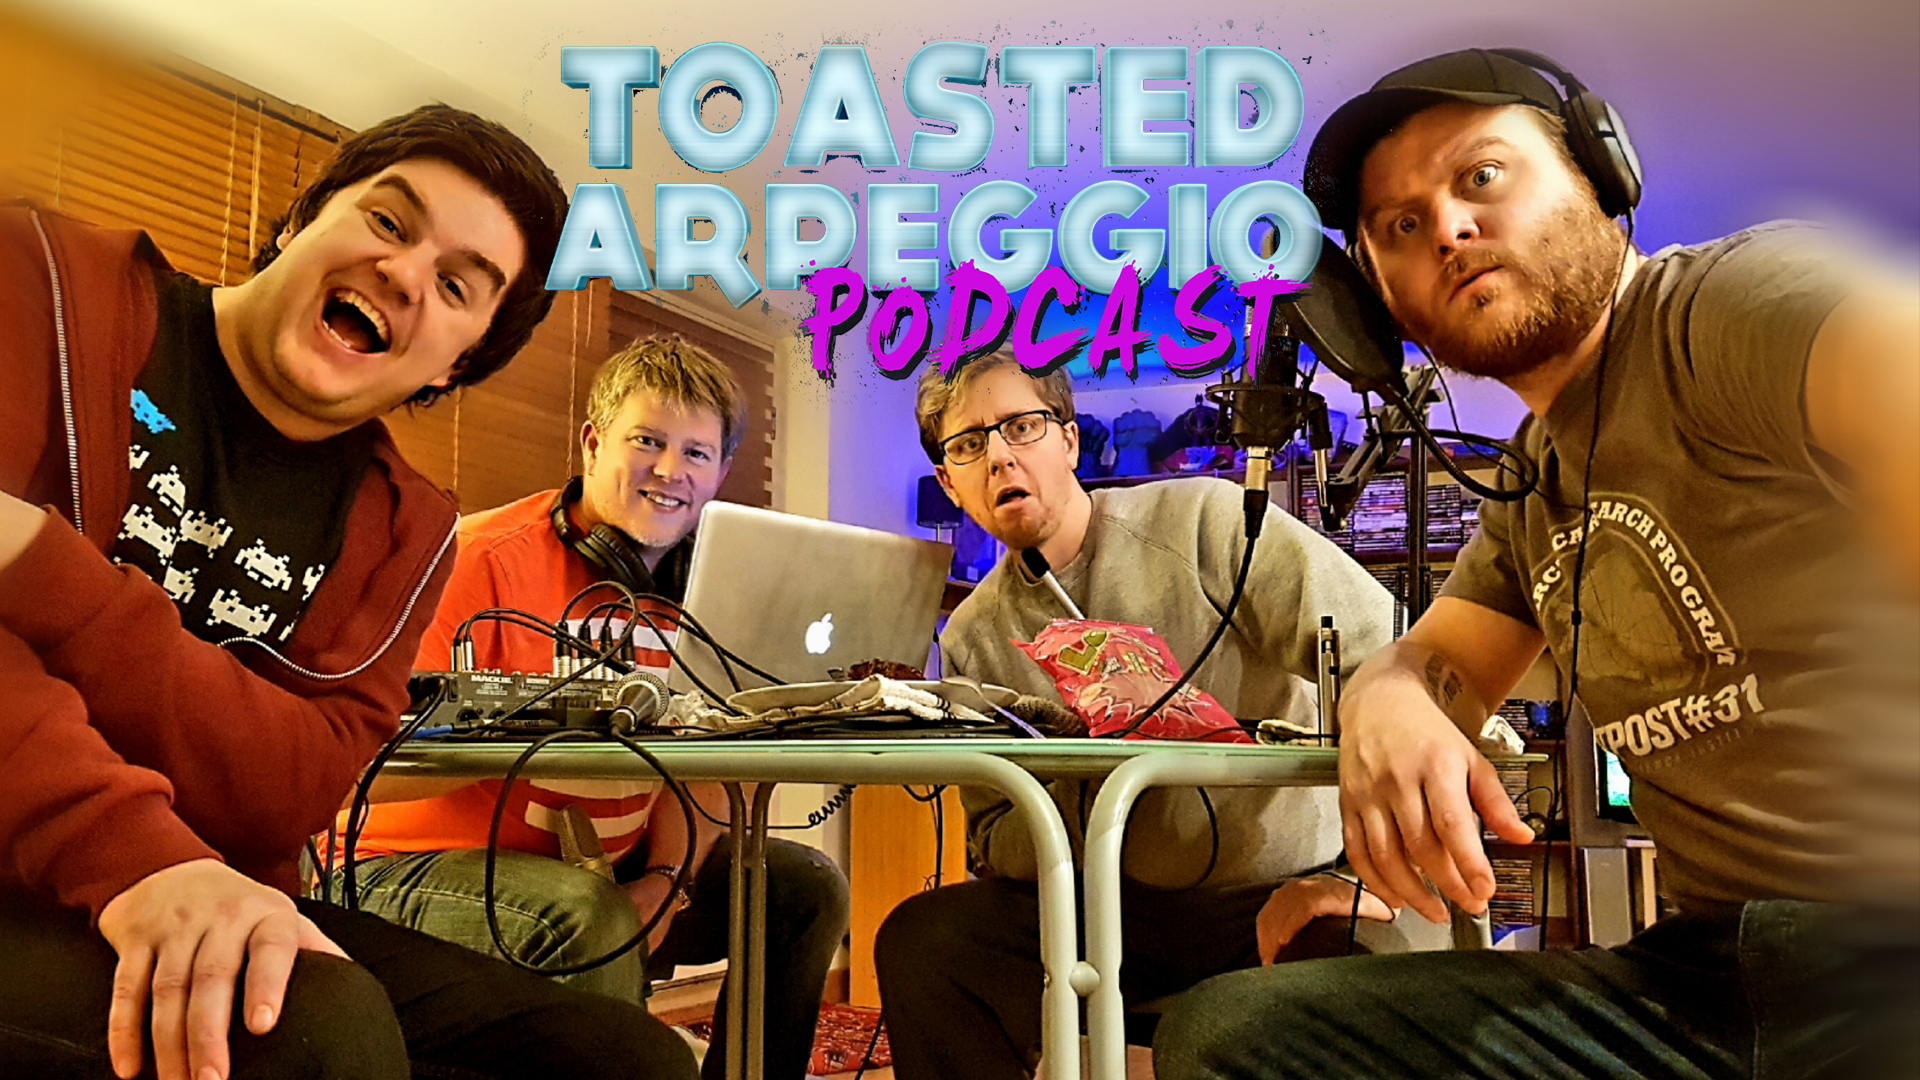 TOASTED ARPEGGIO PODCAST RETURNS!